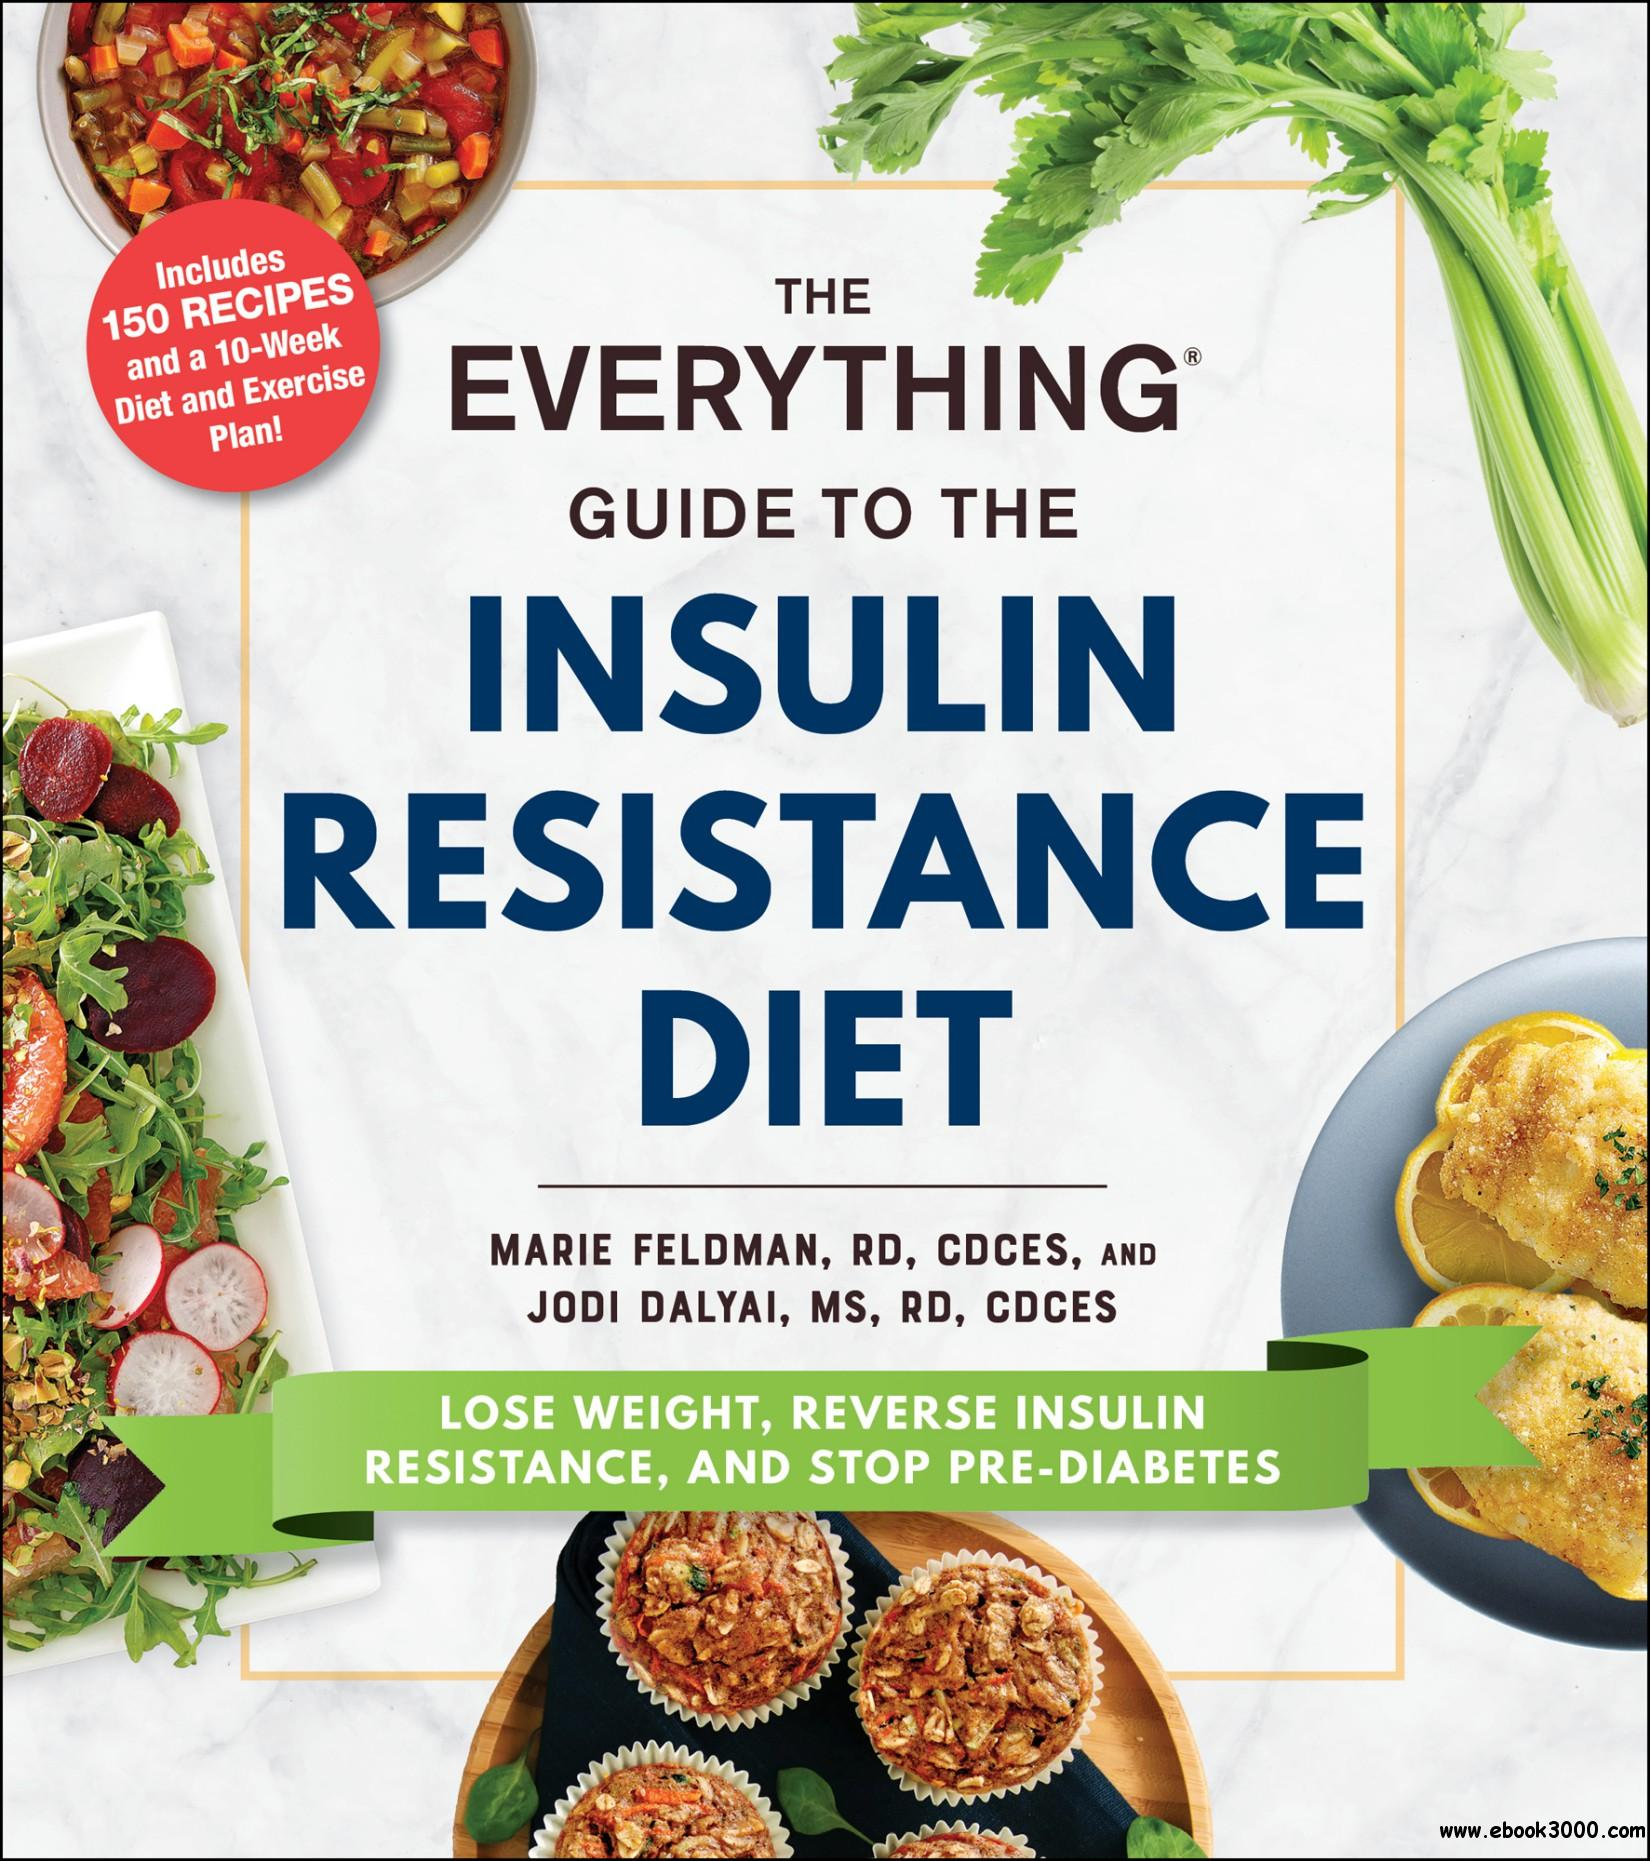 The Everything Guide to the Insulin Resistance Diet (Everything?)